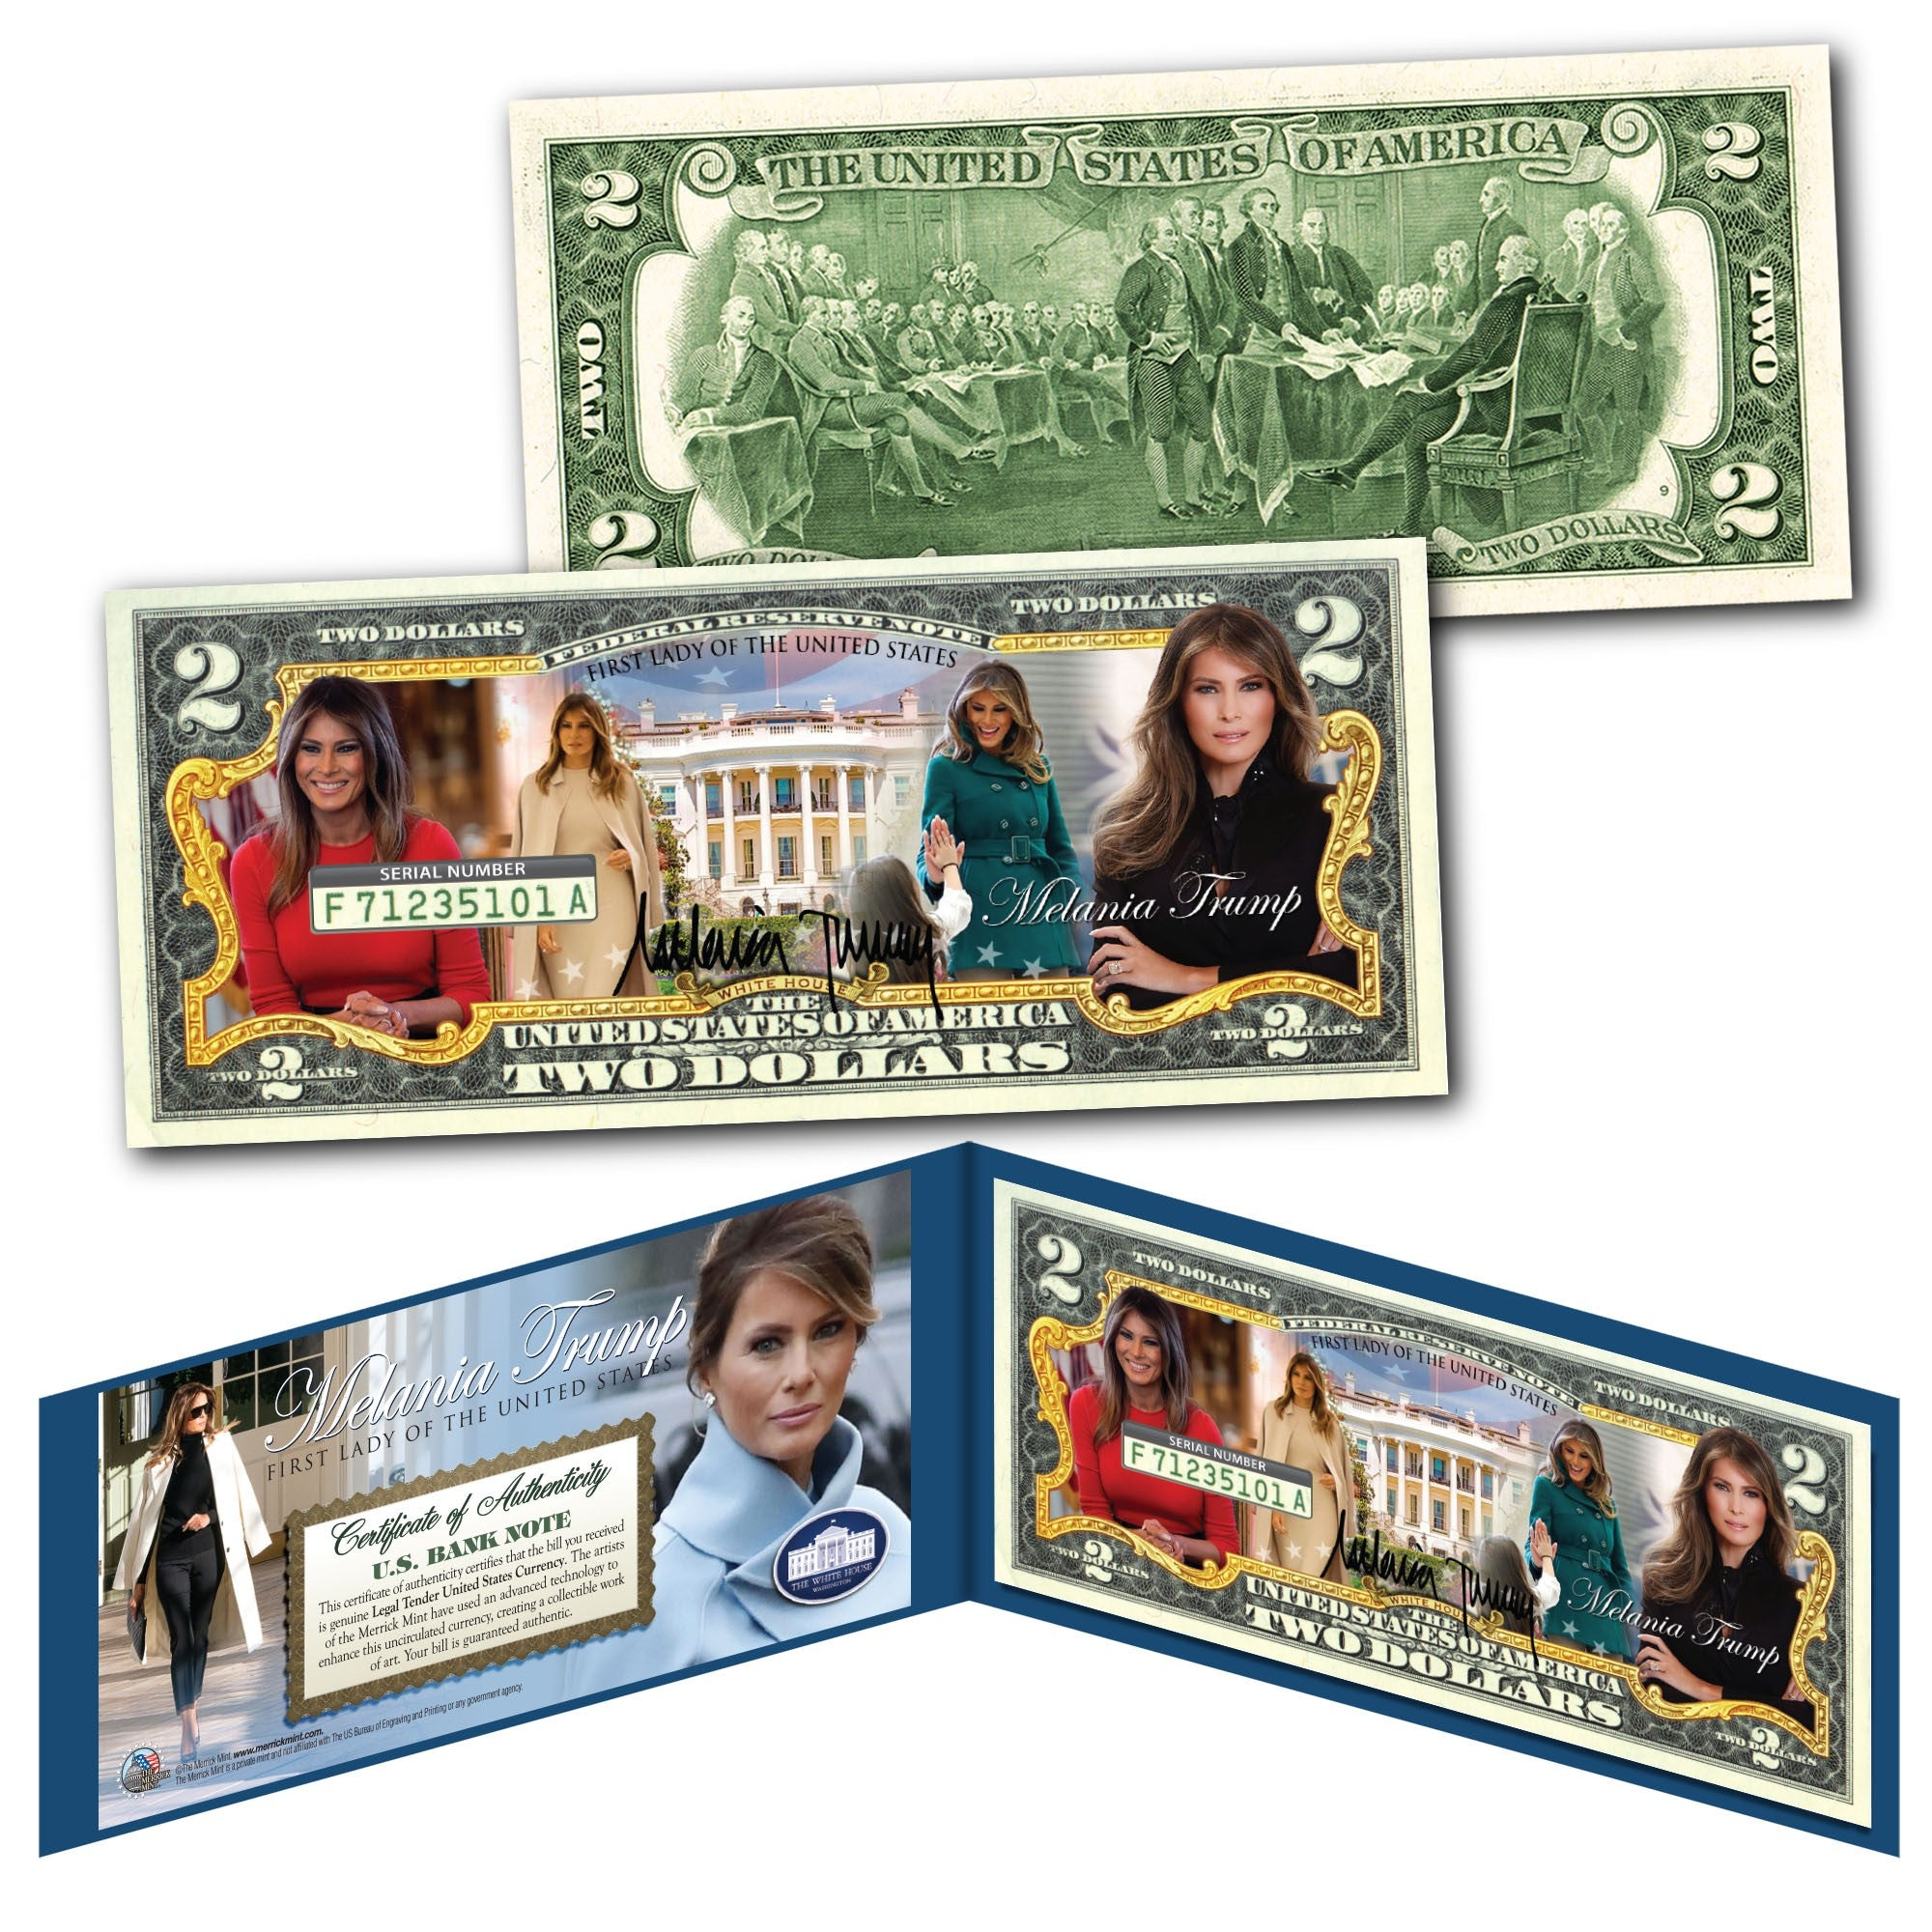 Melania Trump $2 Bill - I Love My Freedom